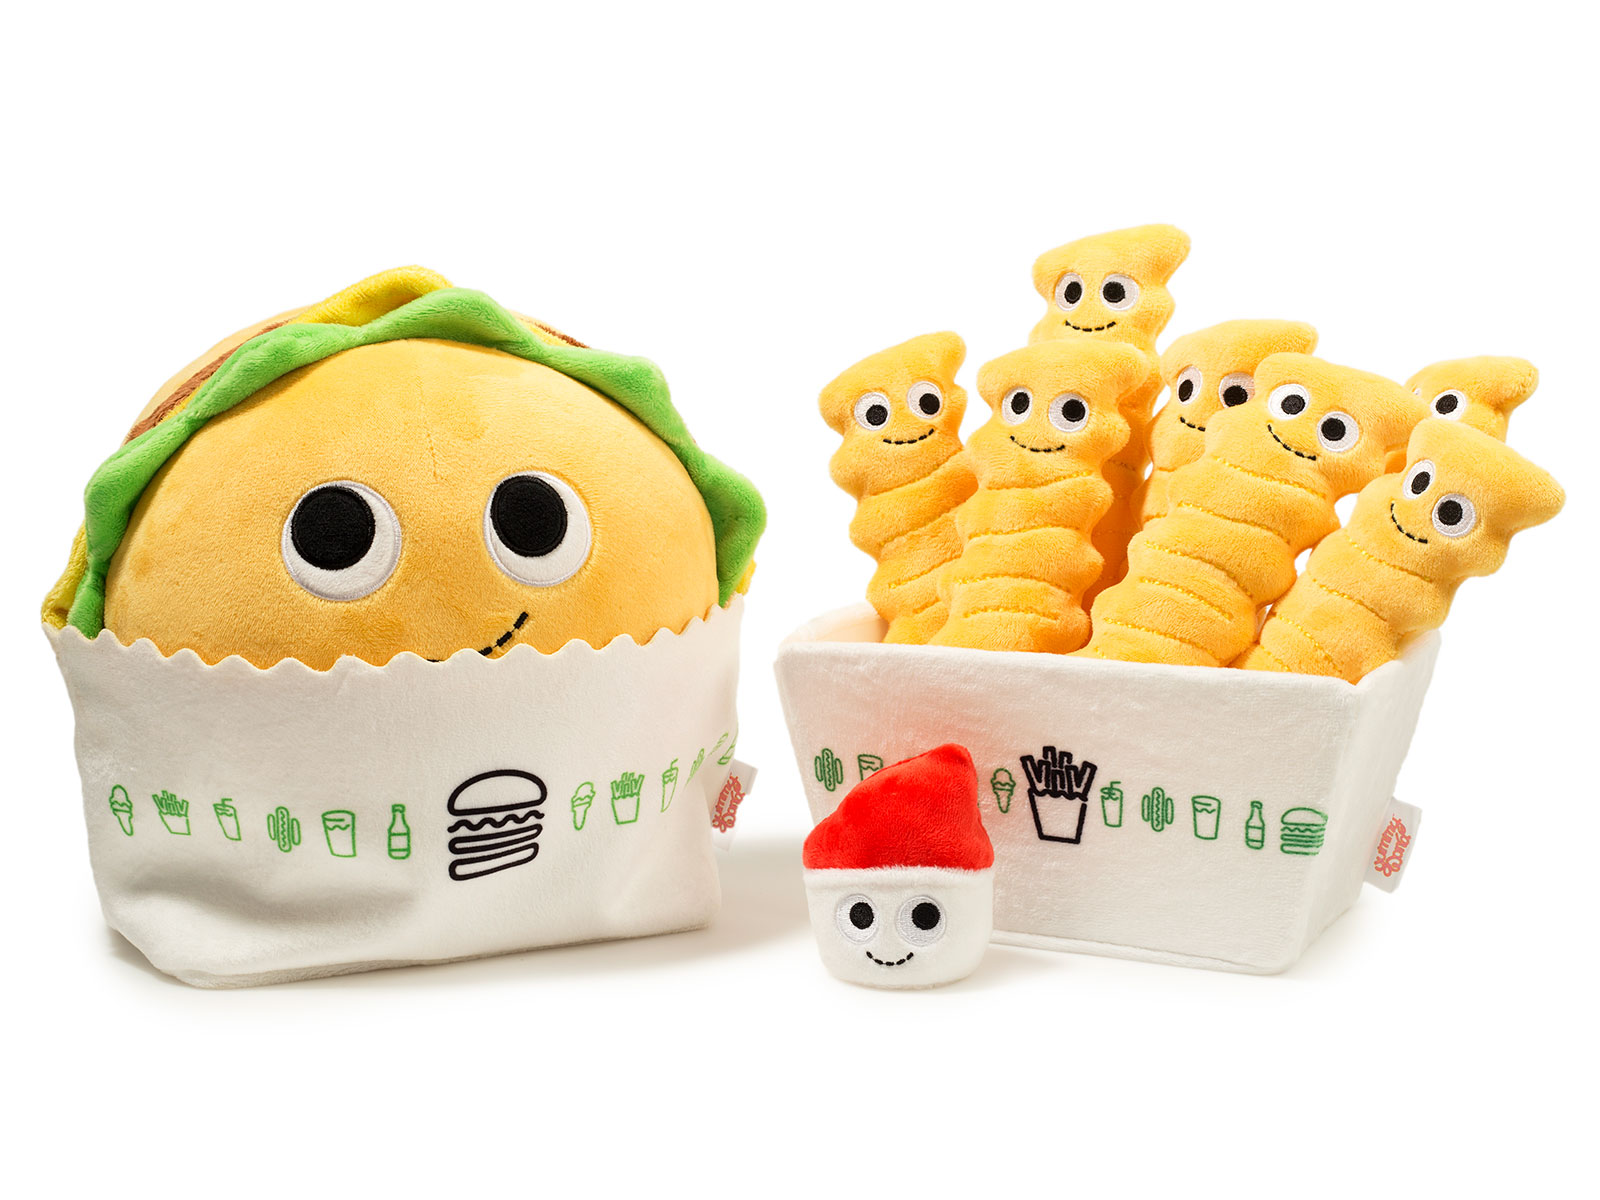 plush burgers and fries shake shack kidrobot